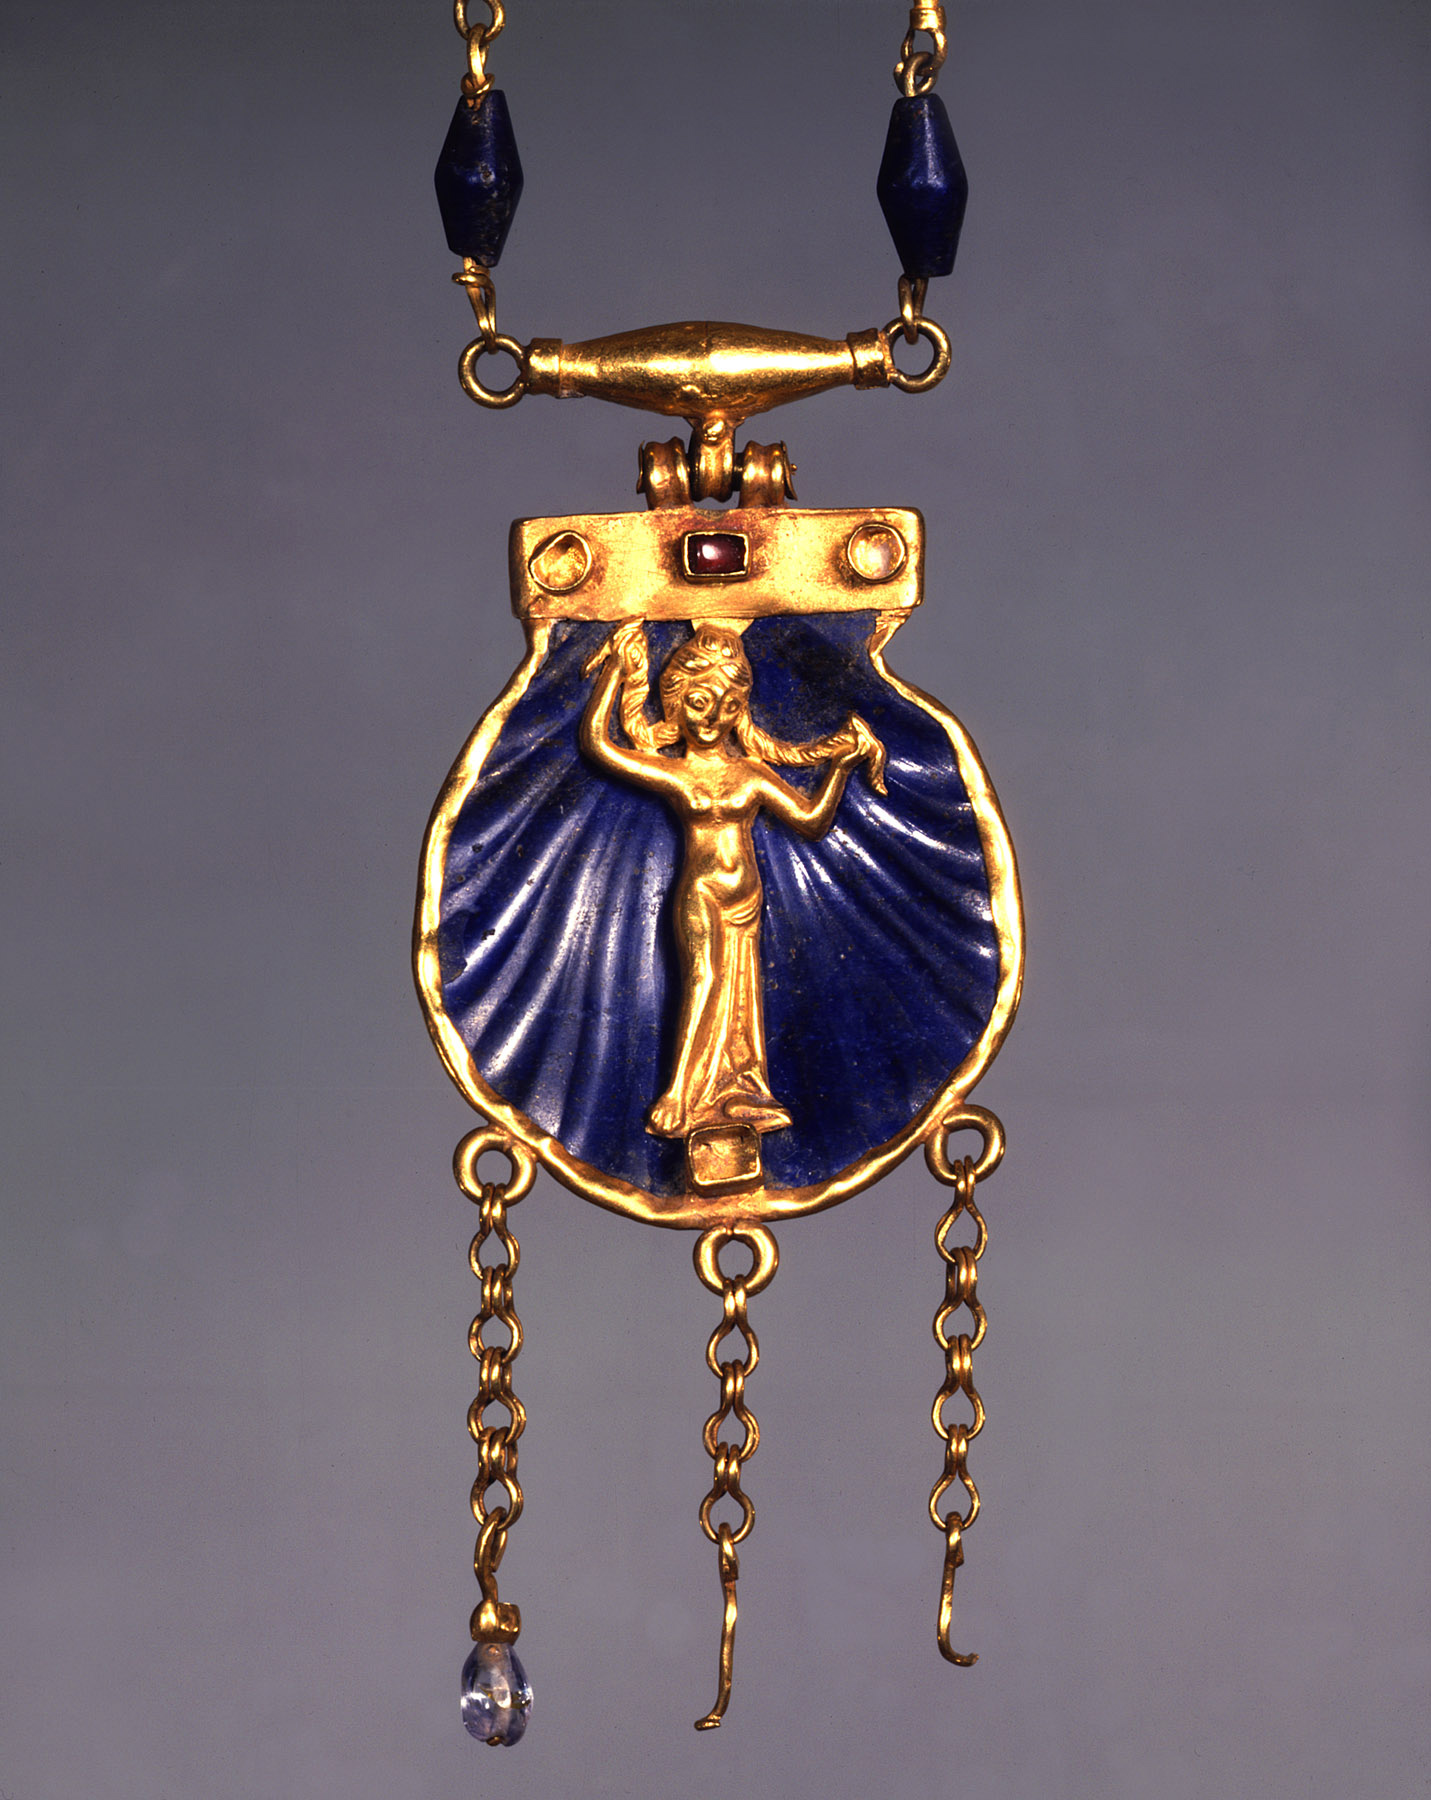 BZ.1928.6, Necklace